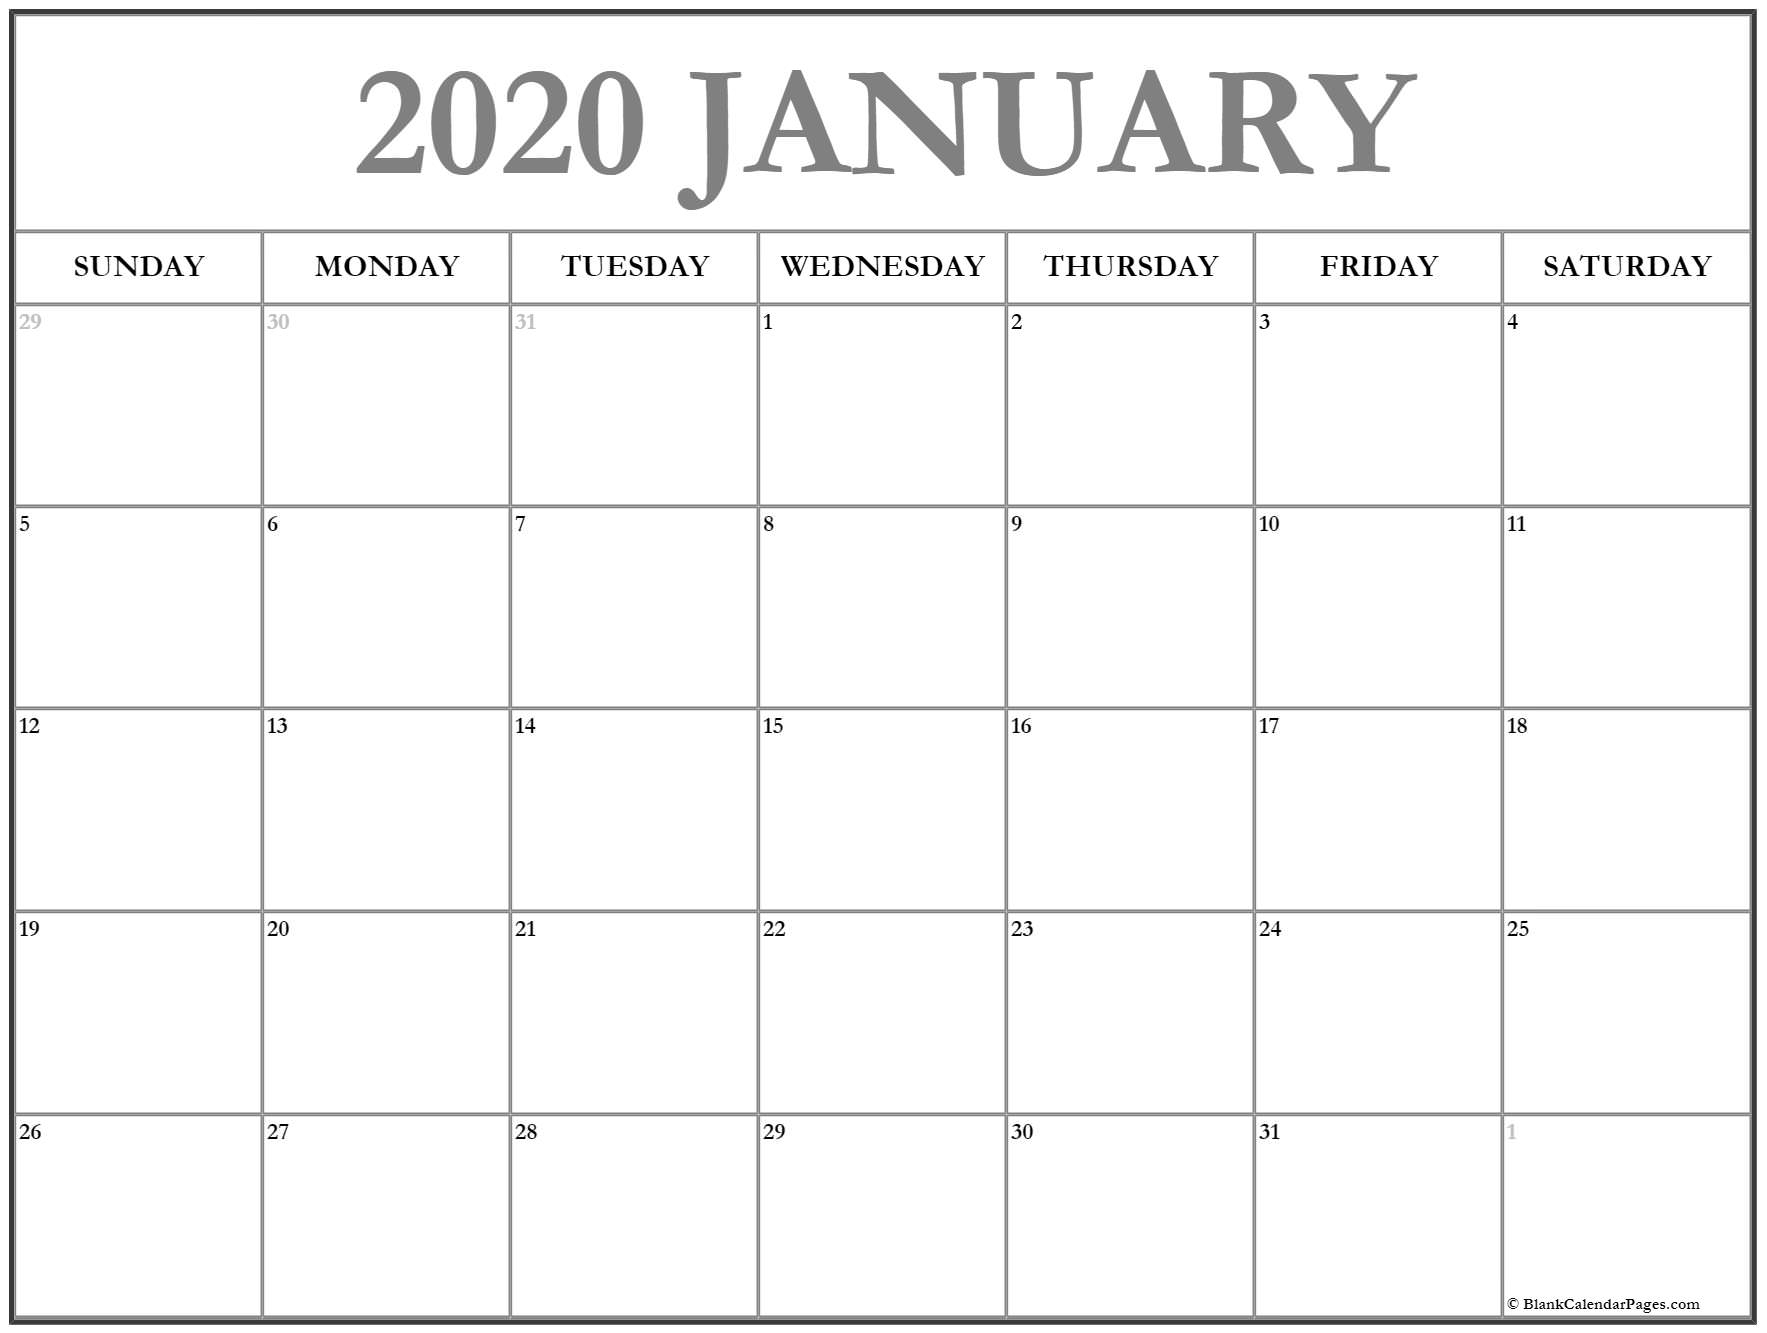 January 2020 Calendar | Free Printable Monthly Calendars for Printable 2020 Monthly Calendars Starting With Monday